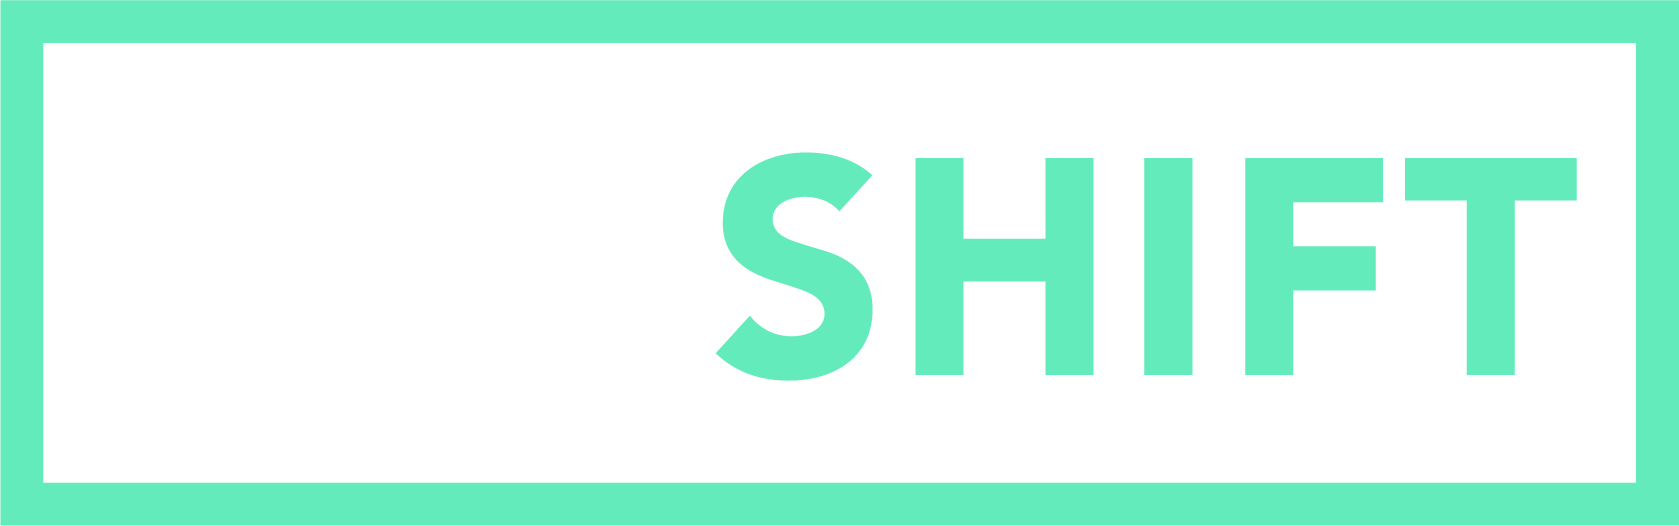 Shift_Logo_Green_RGB